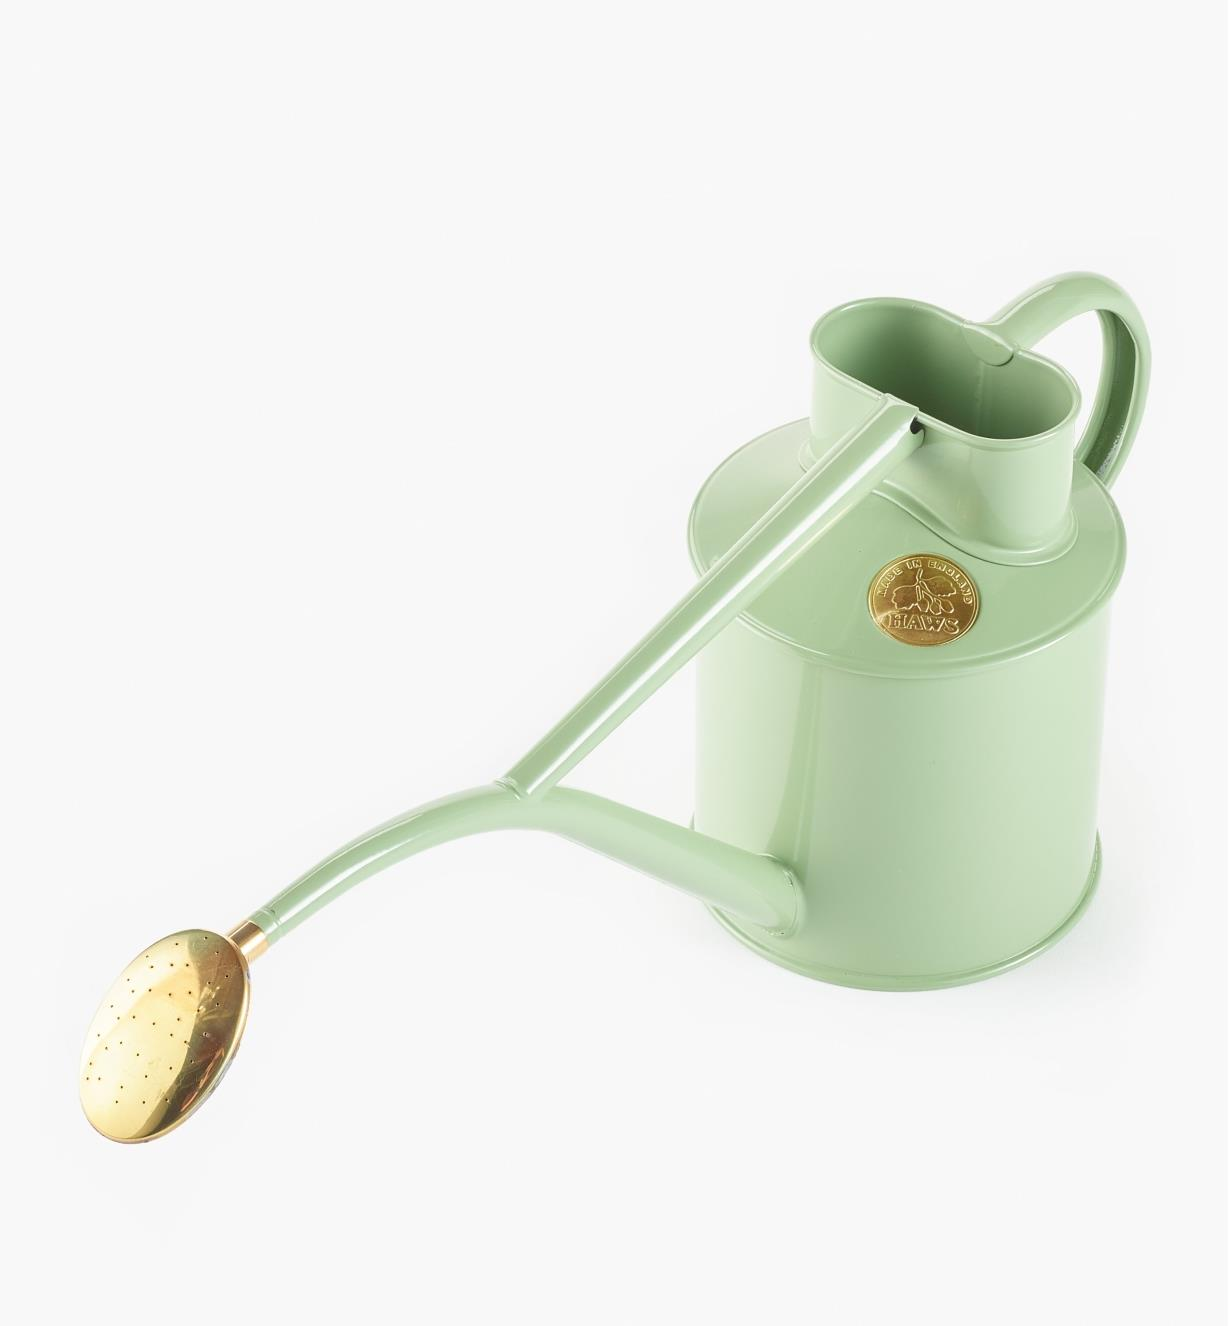 XB920 - Haws Metal Watering Can, Sage